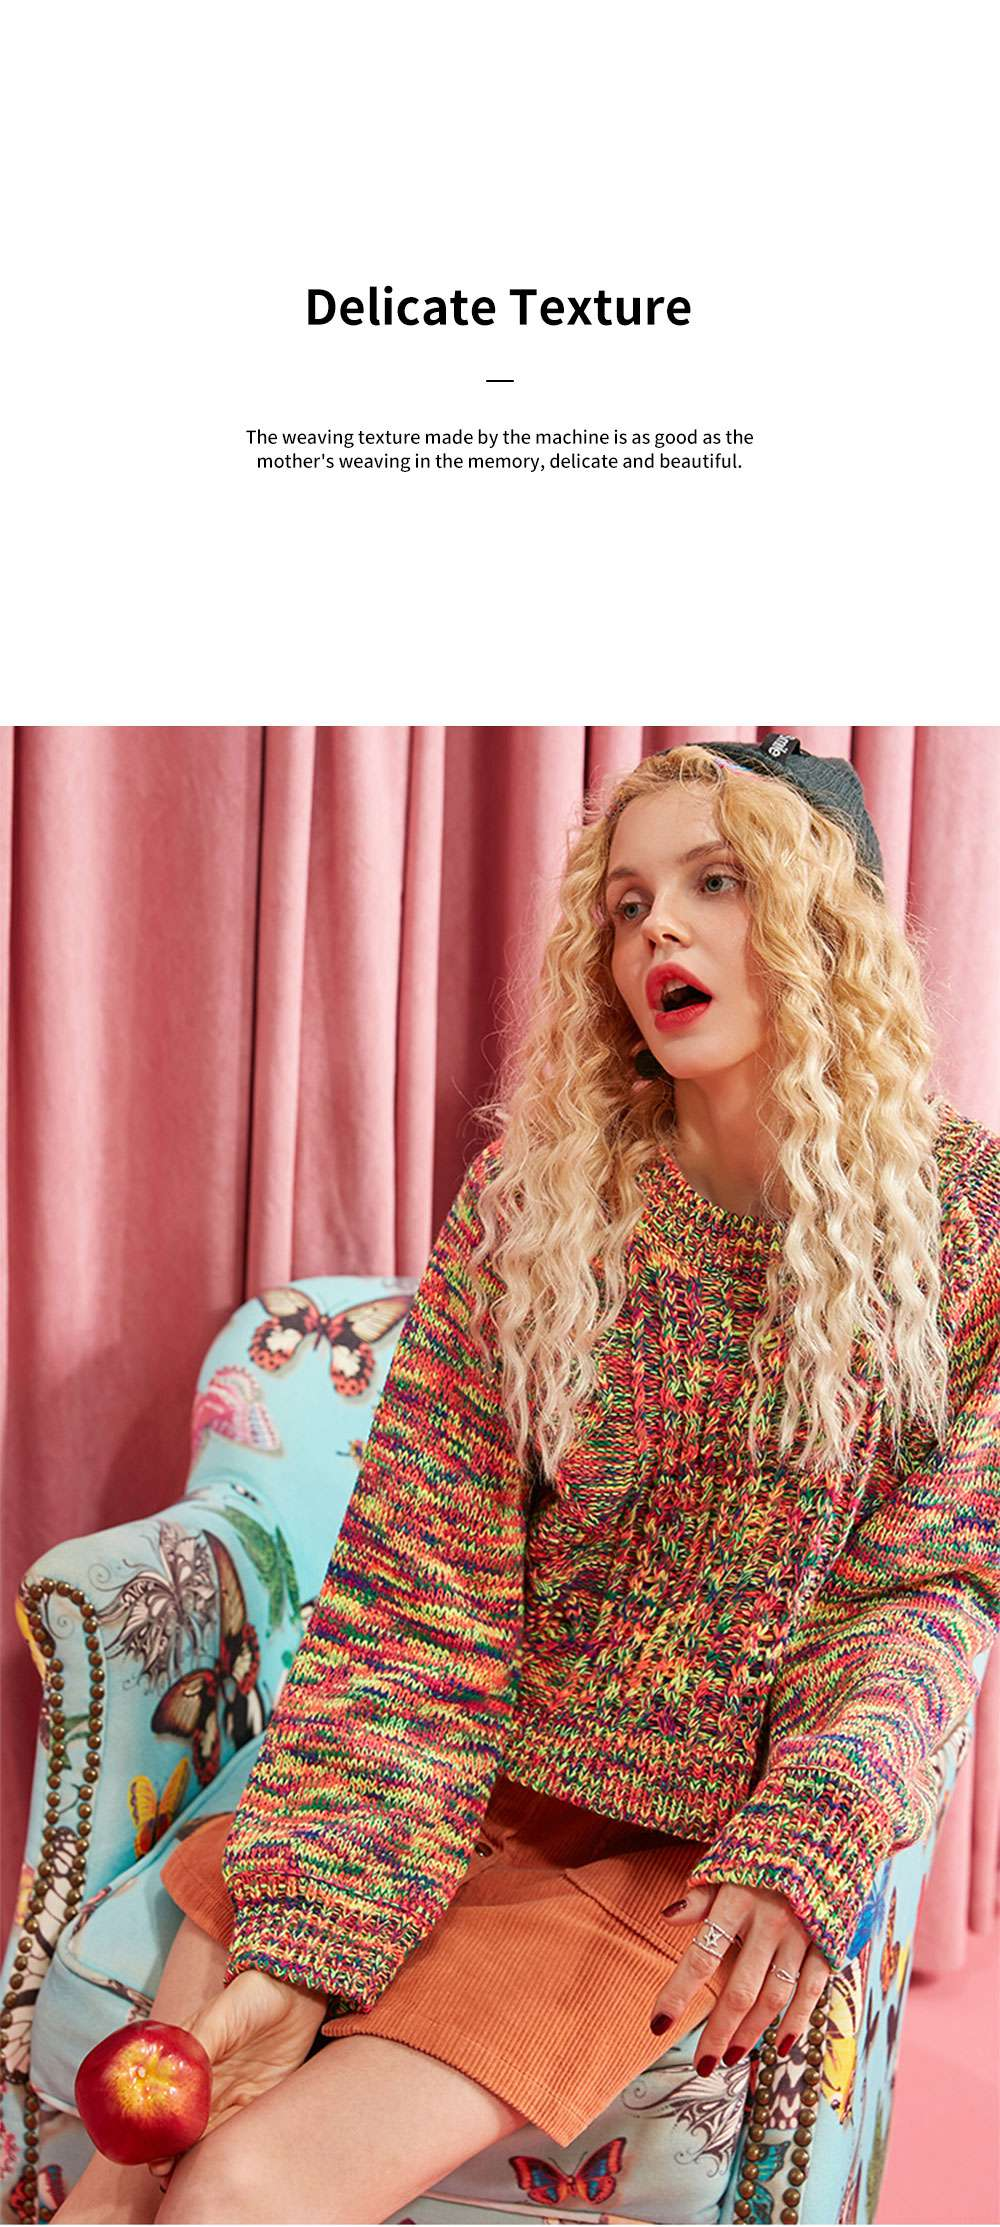 ELFSACK Rainbow-Colored Knitwear Lightweight Pullover Round Neck Sweater for Women in Autumn and Winter 3